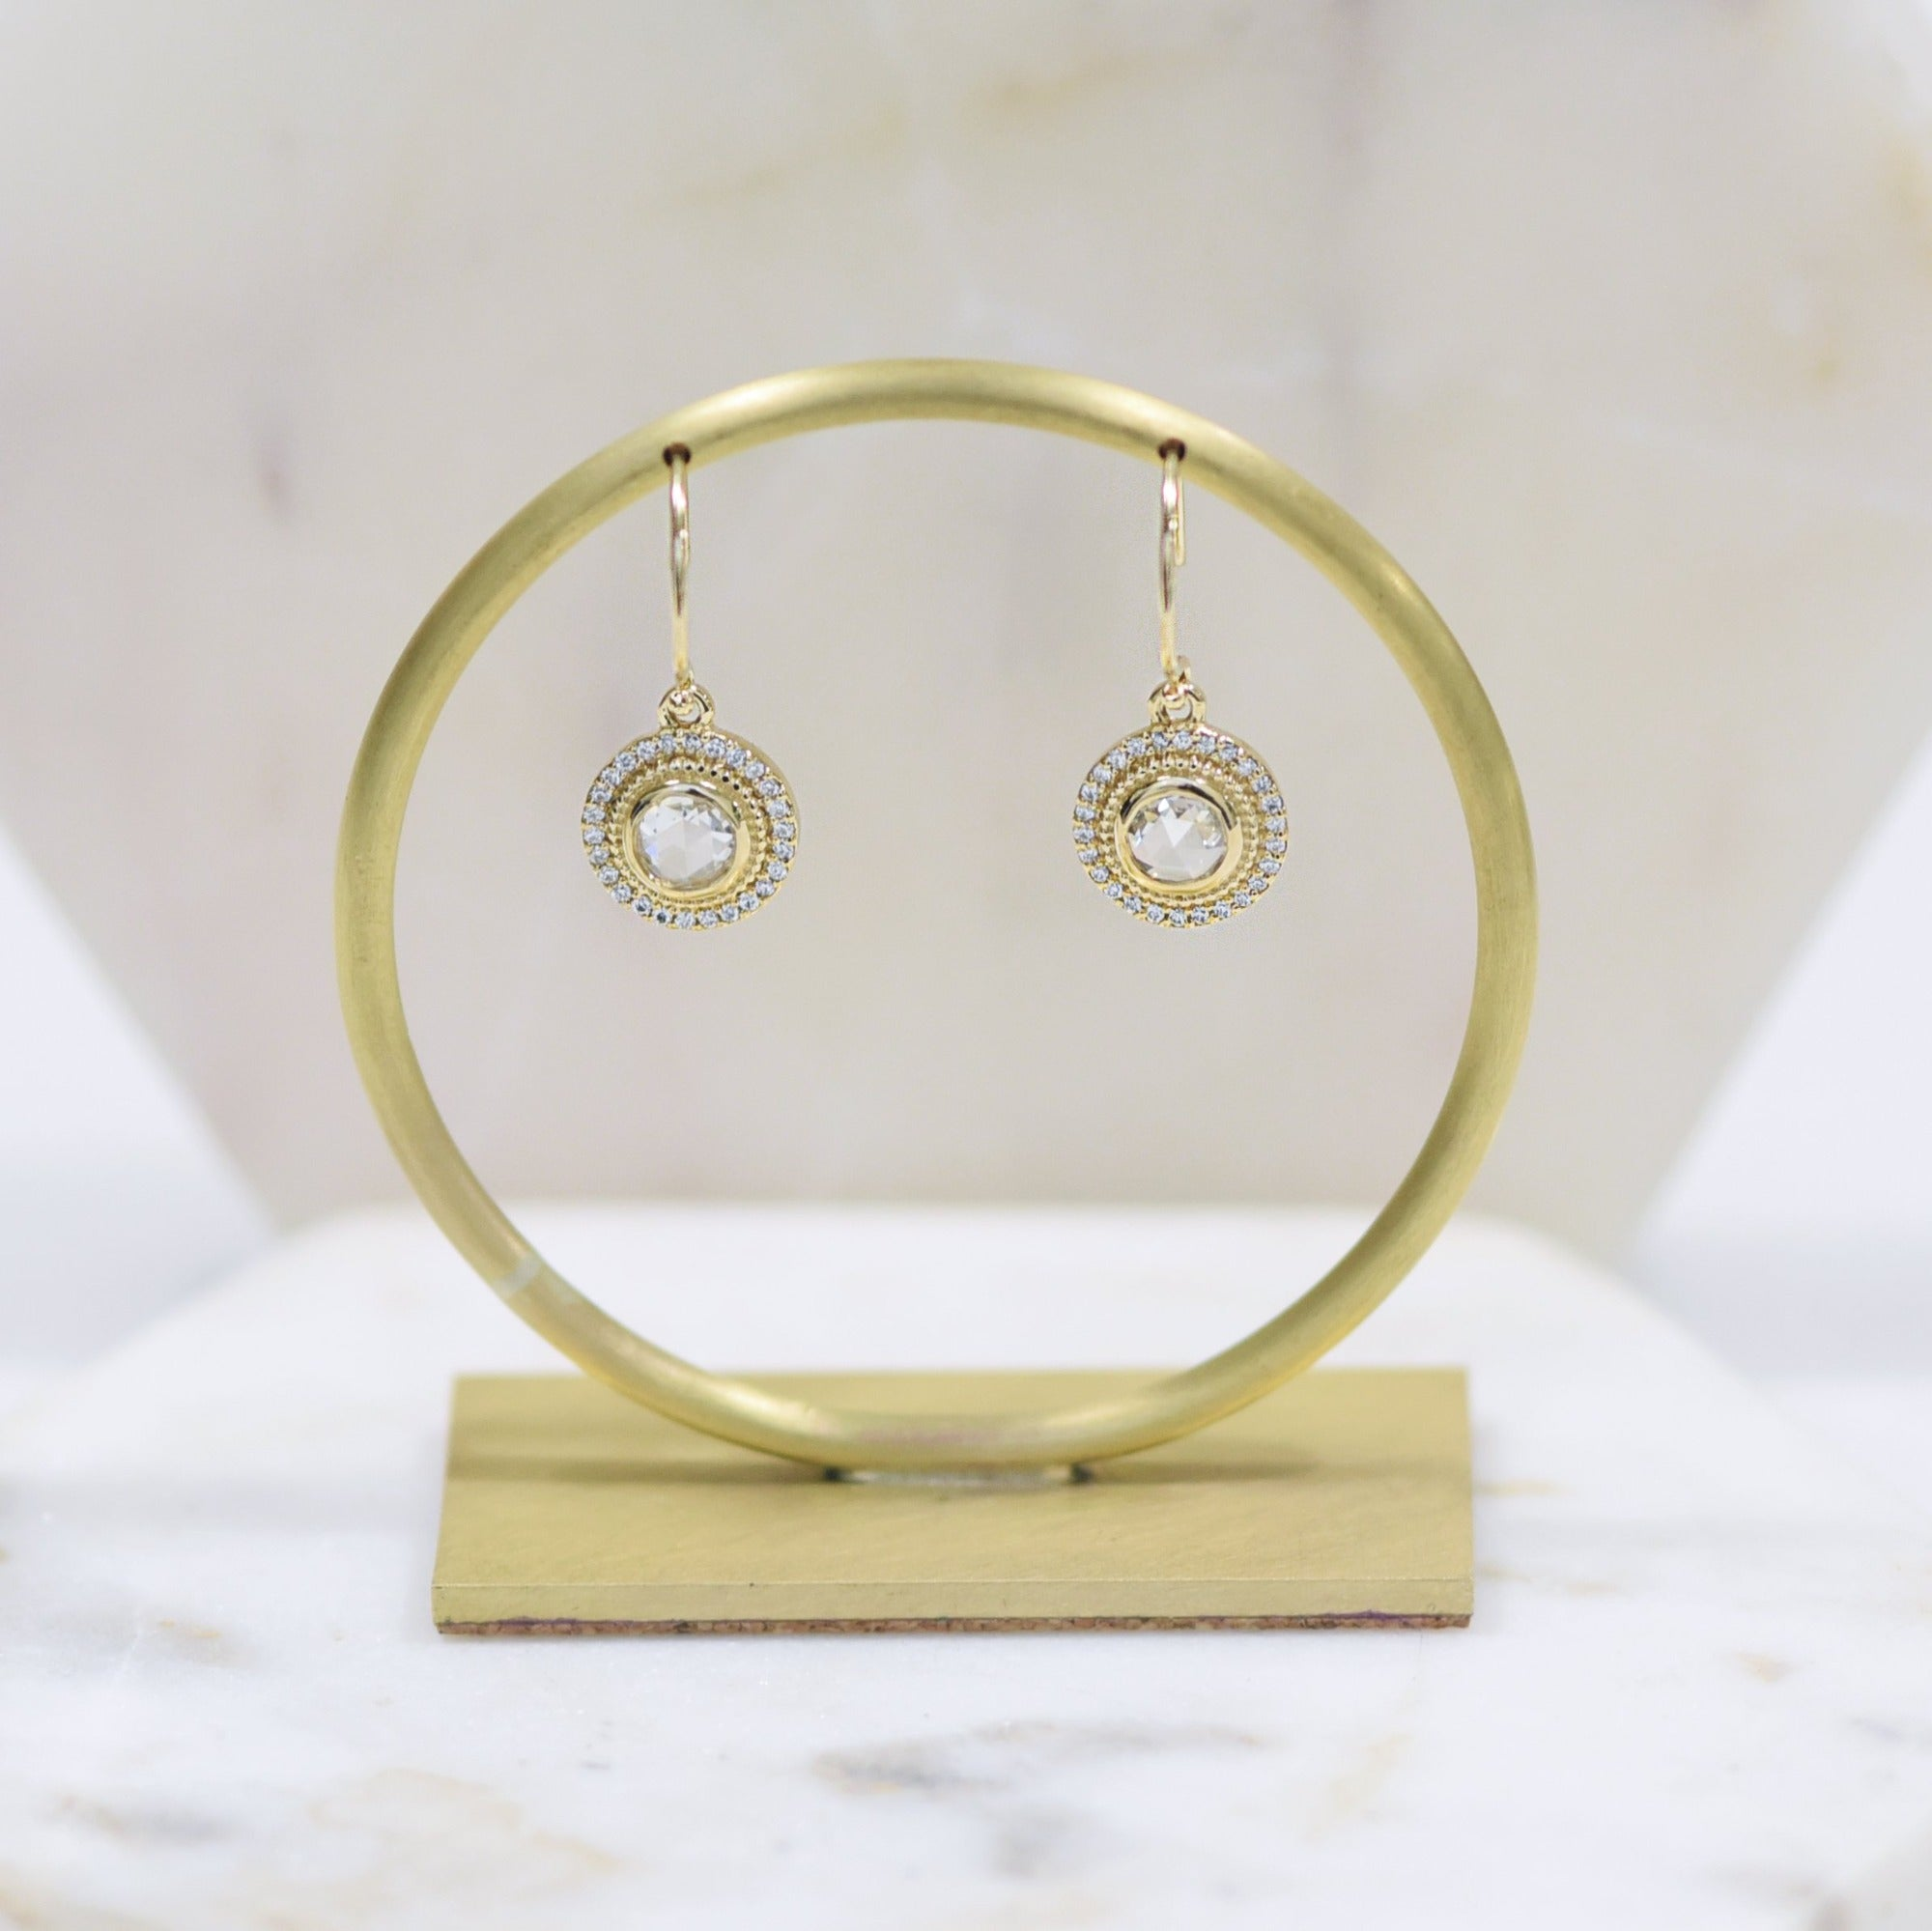 Diamond halo dangle earrings 14k yellow gold Selena by Valerie Madison